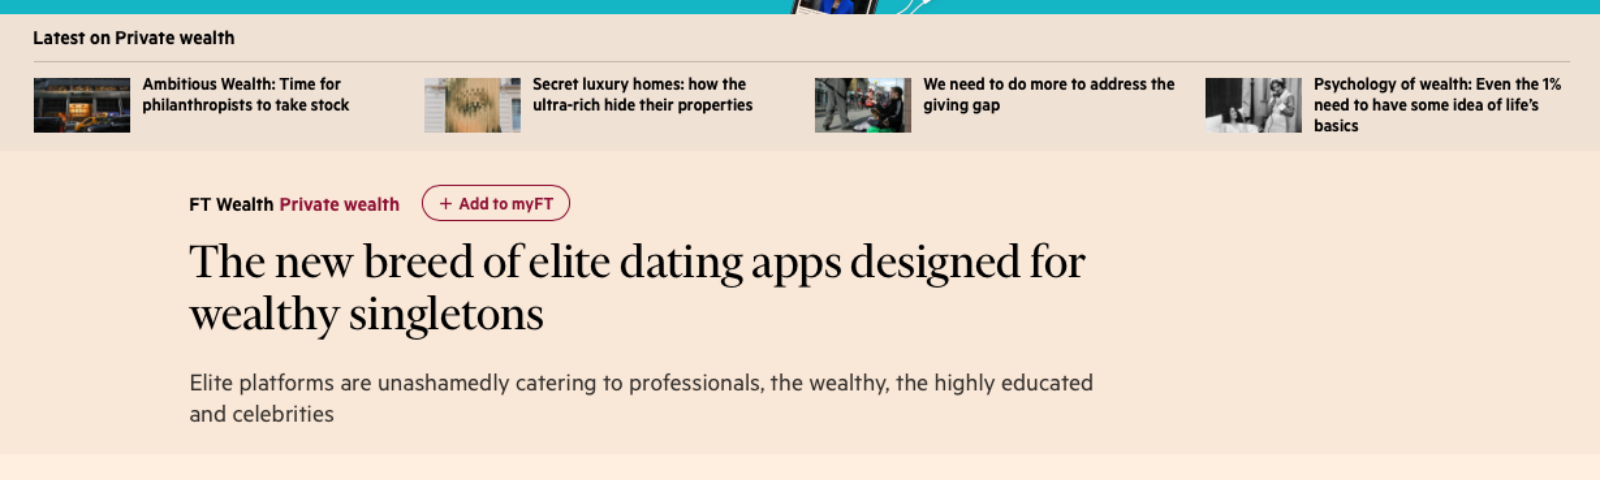 financial times dating website